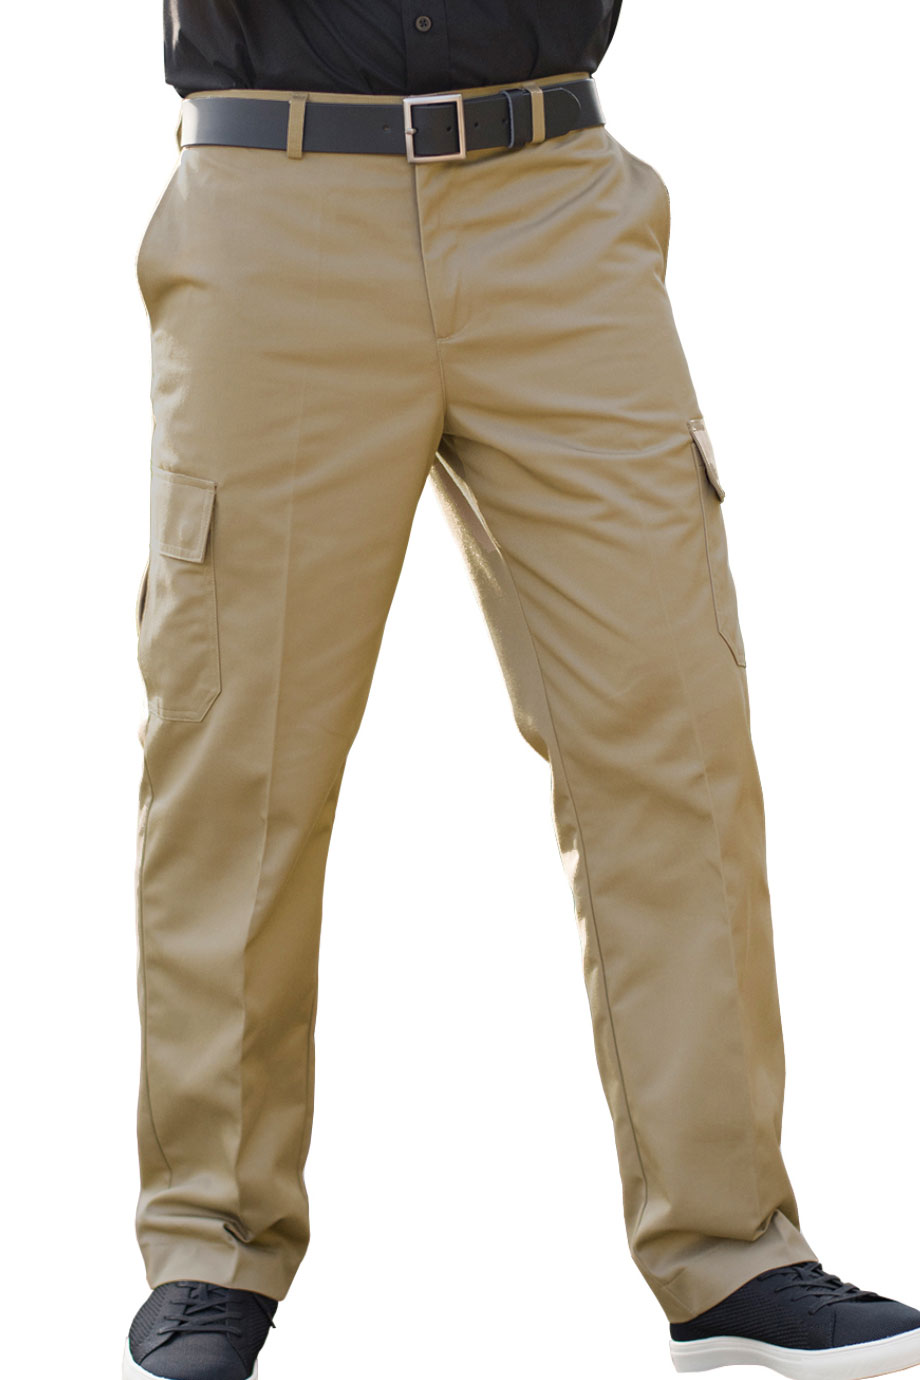 Edwards Mens Utility Chino Cargo Pant